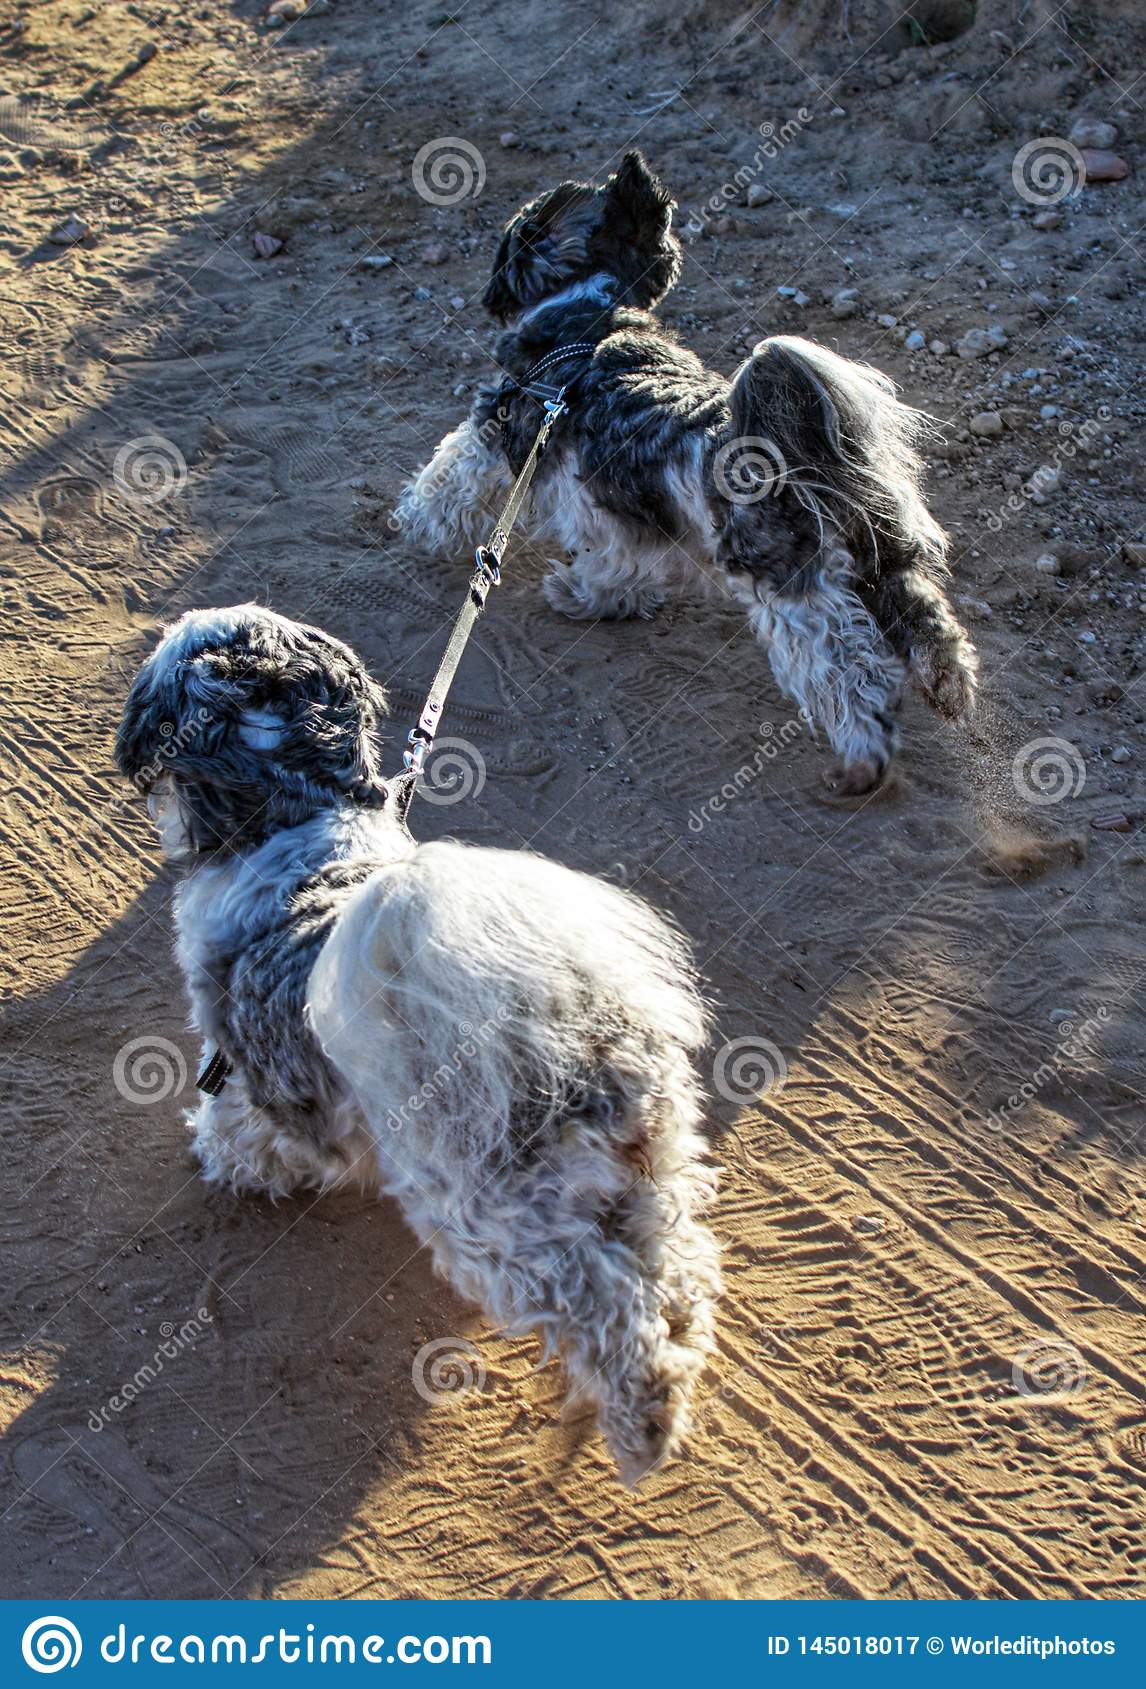 Two Shih Tzu dogs tied up with a leash running by themselves.